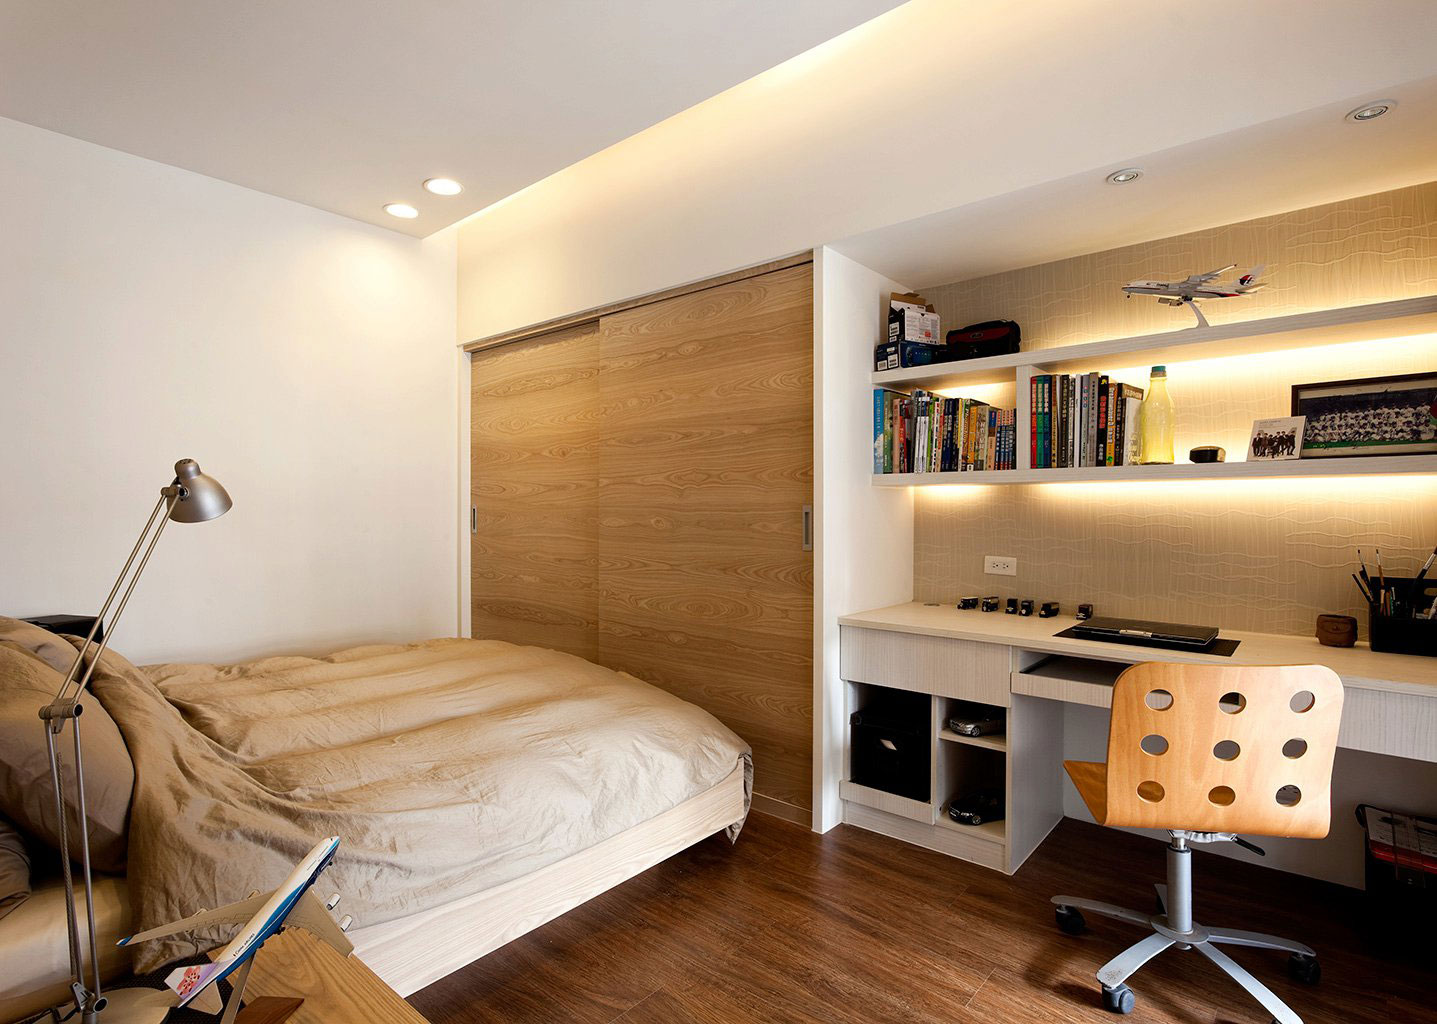 Interior-Design-For-Compact-Apartment-9 Examples Of Interior Design For